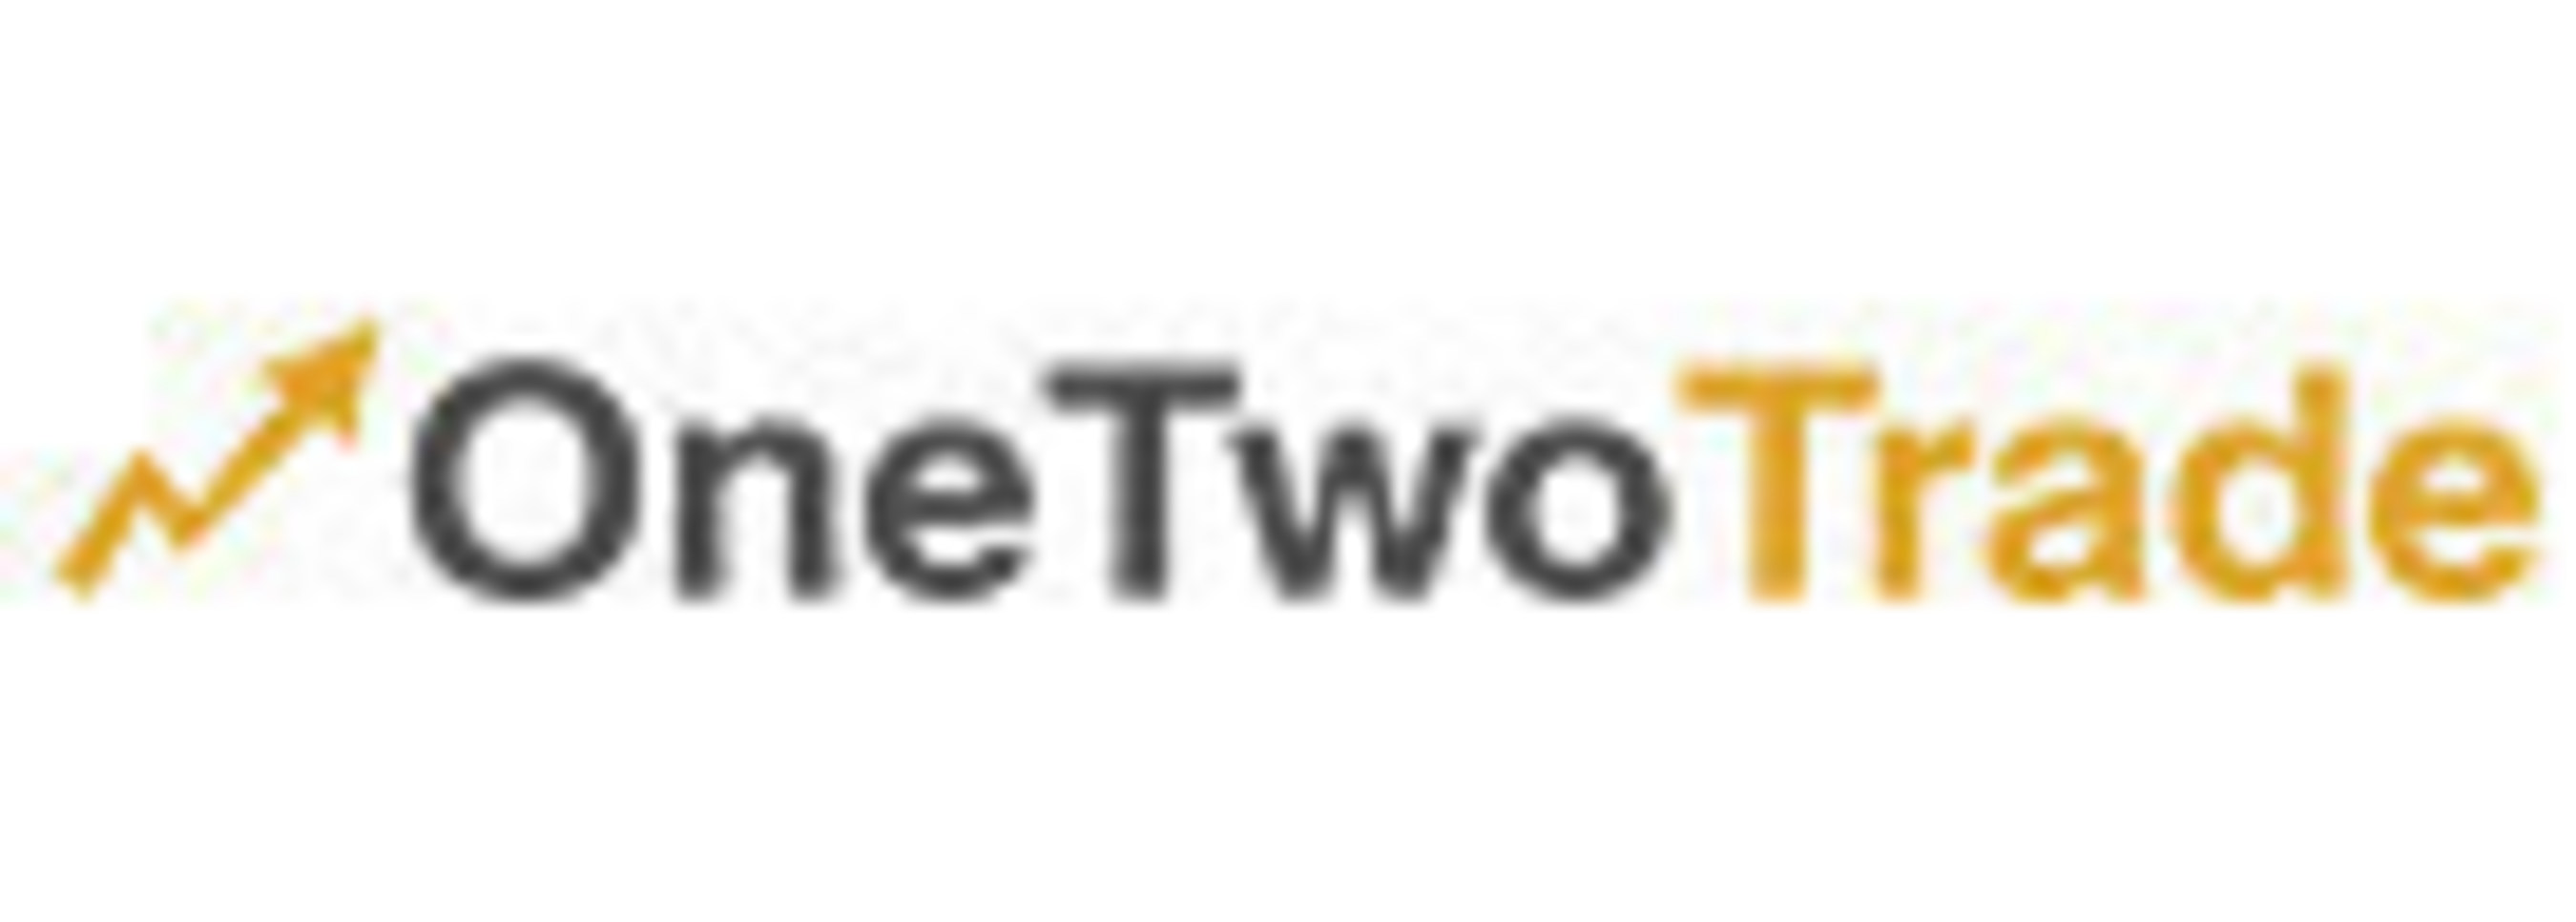 OneTwoTrade Launches 30-Second Trading